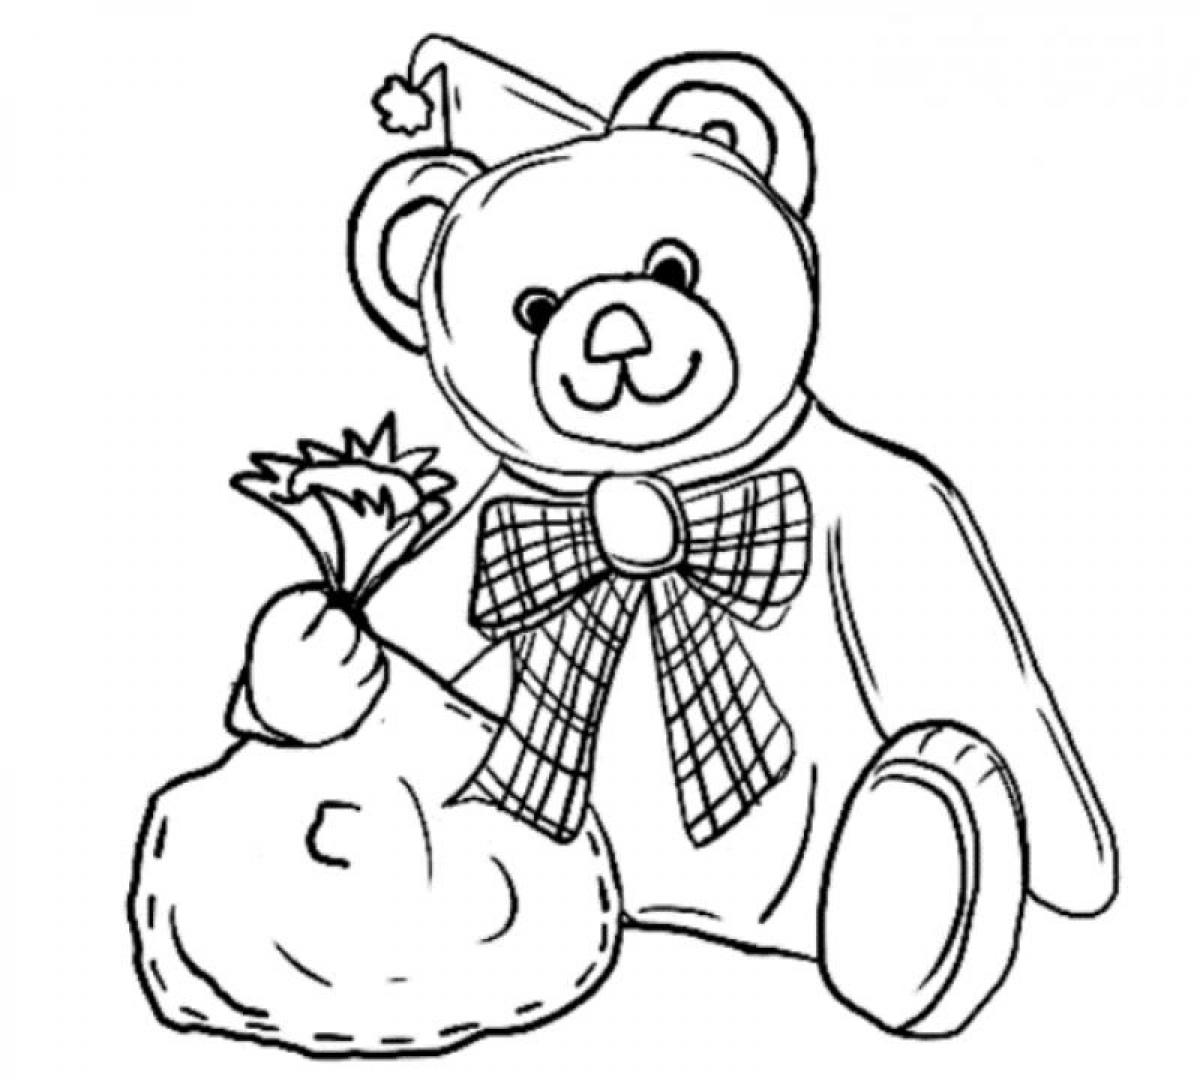 teddy bear colour in printable teddy bear coloring pages for kids bear in colour teddy